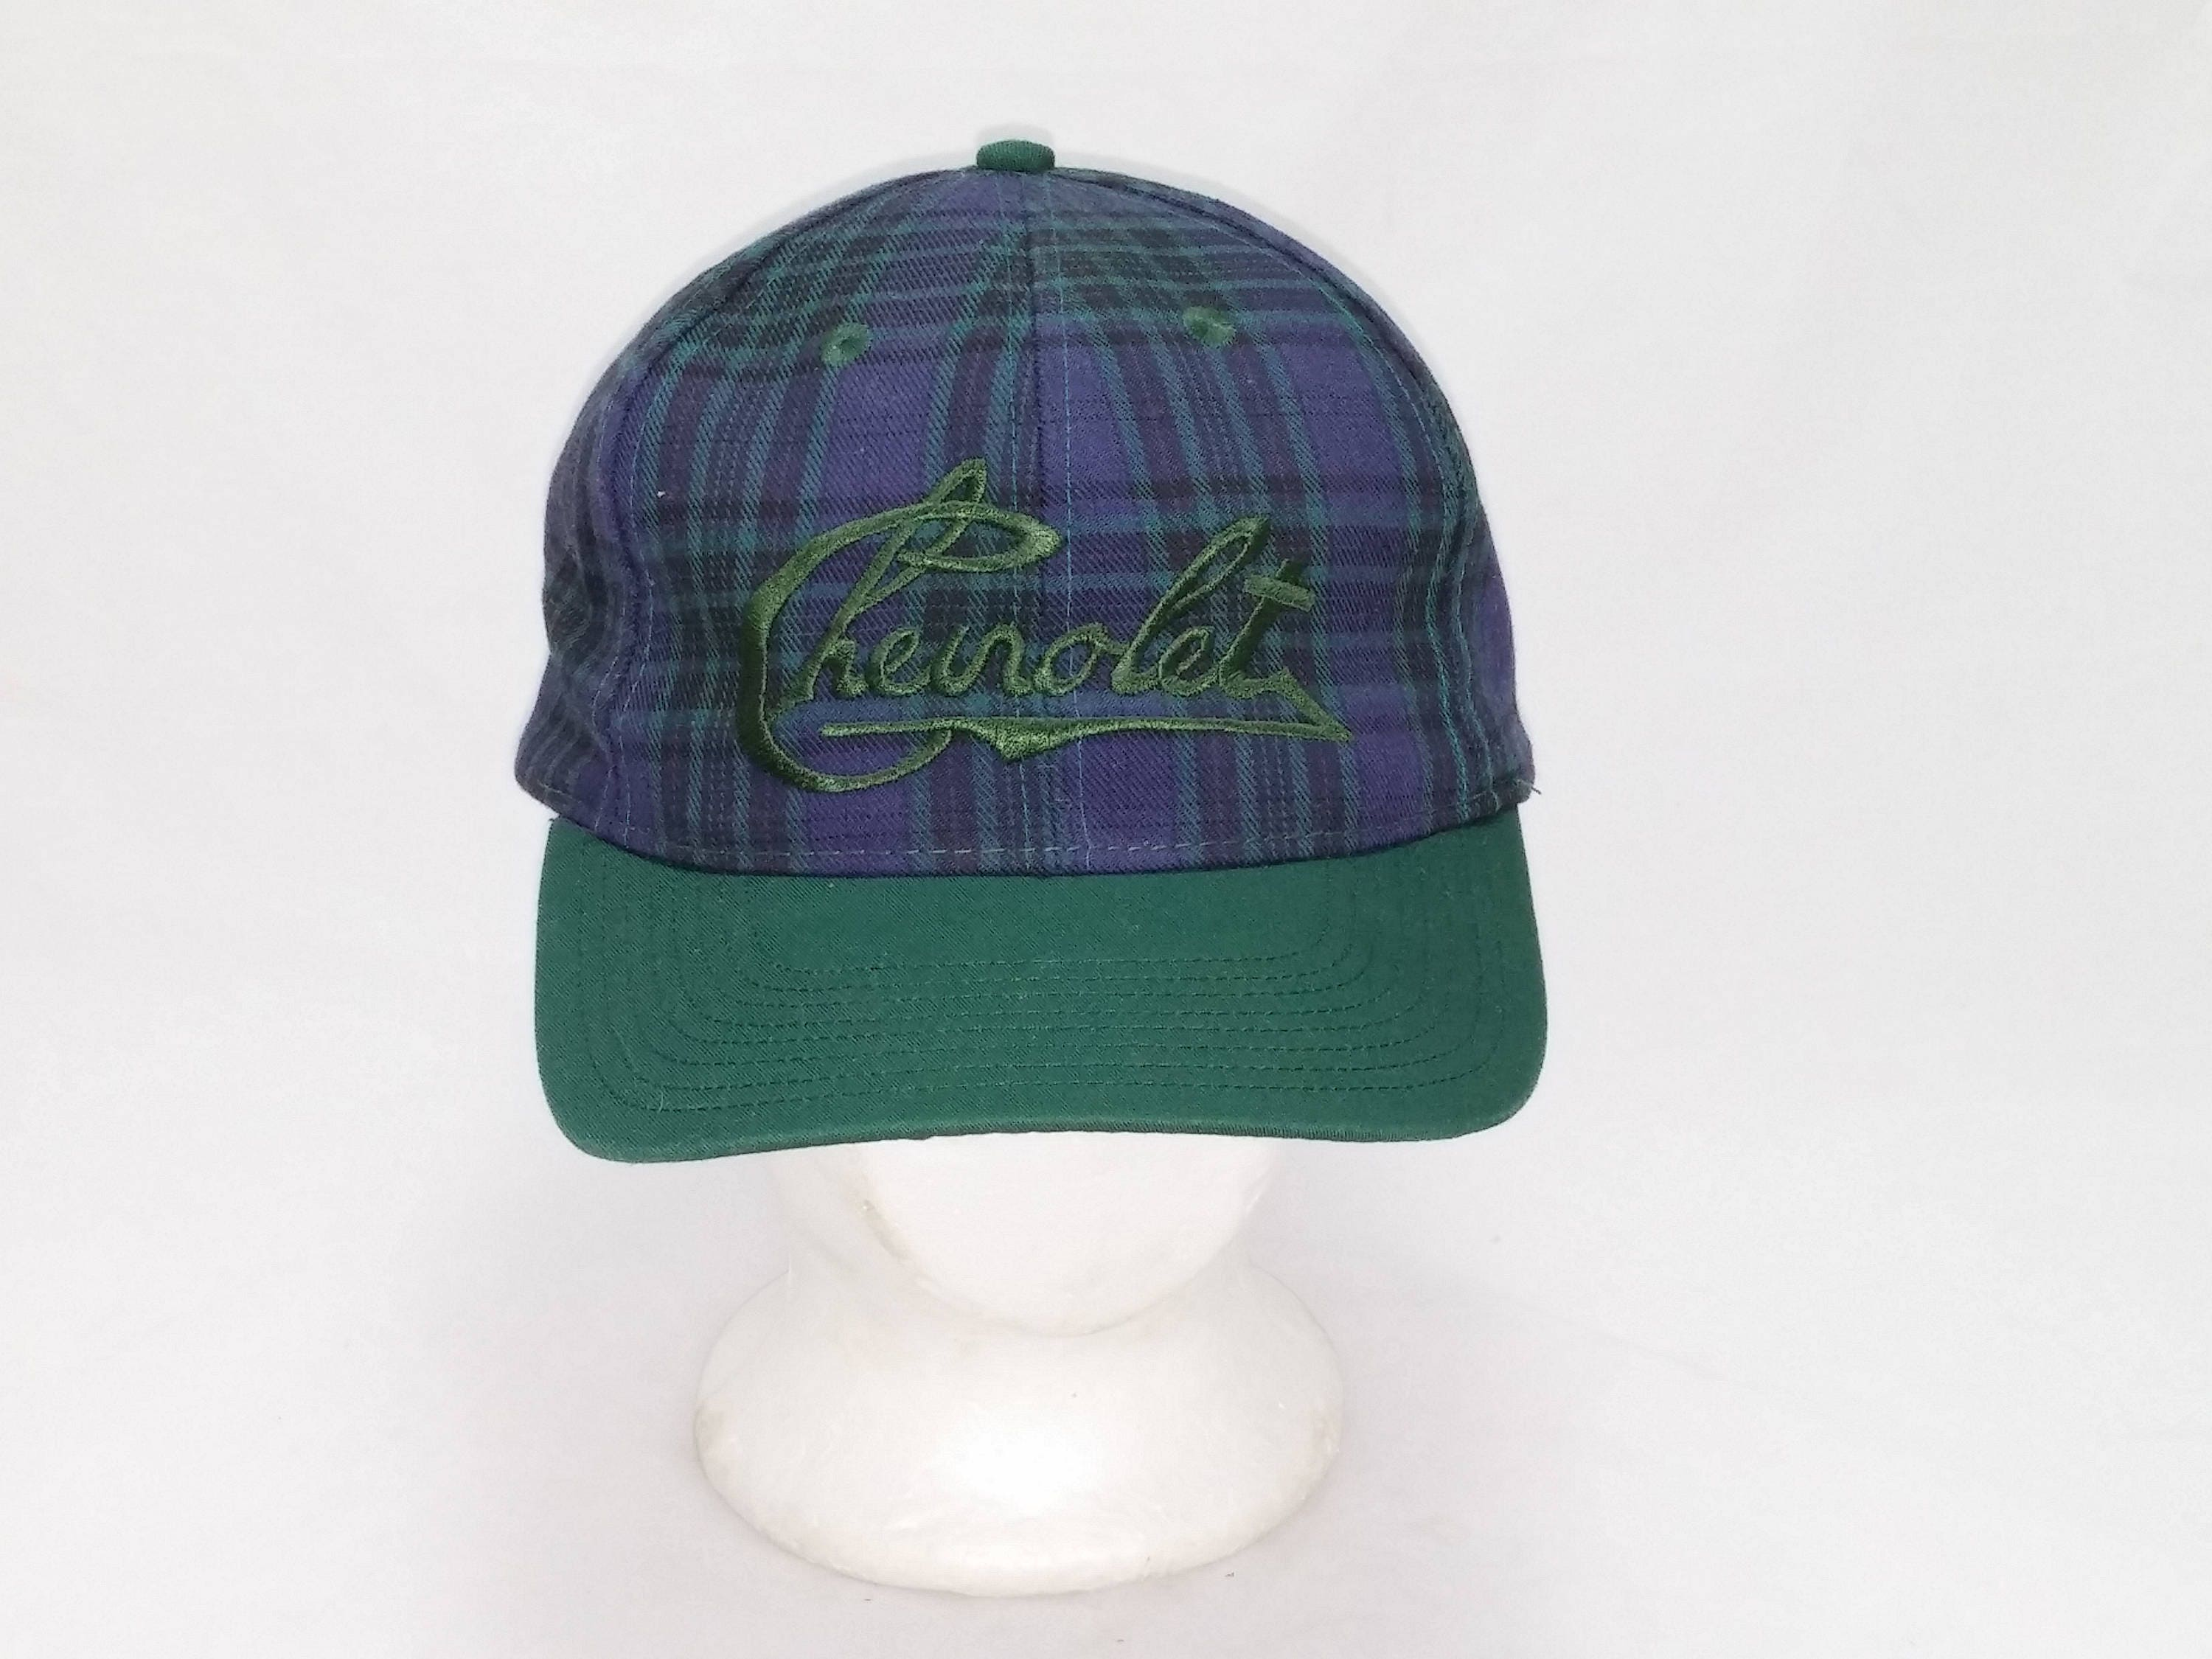 e2a03e46 Vintage 1990s Snap back Trucker Ball Cap - Chevrolet on Blue Plaid Pattern  - Hipster, Rockabilly, Chevy, Gearhead, Accessories, Dad Hats